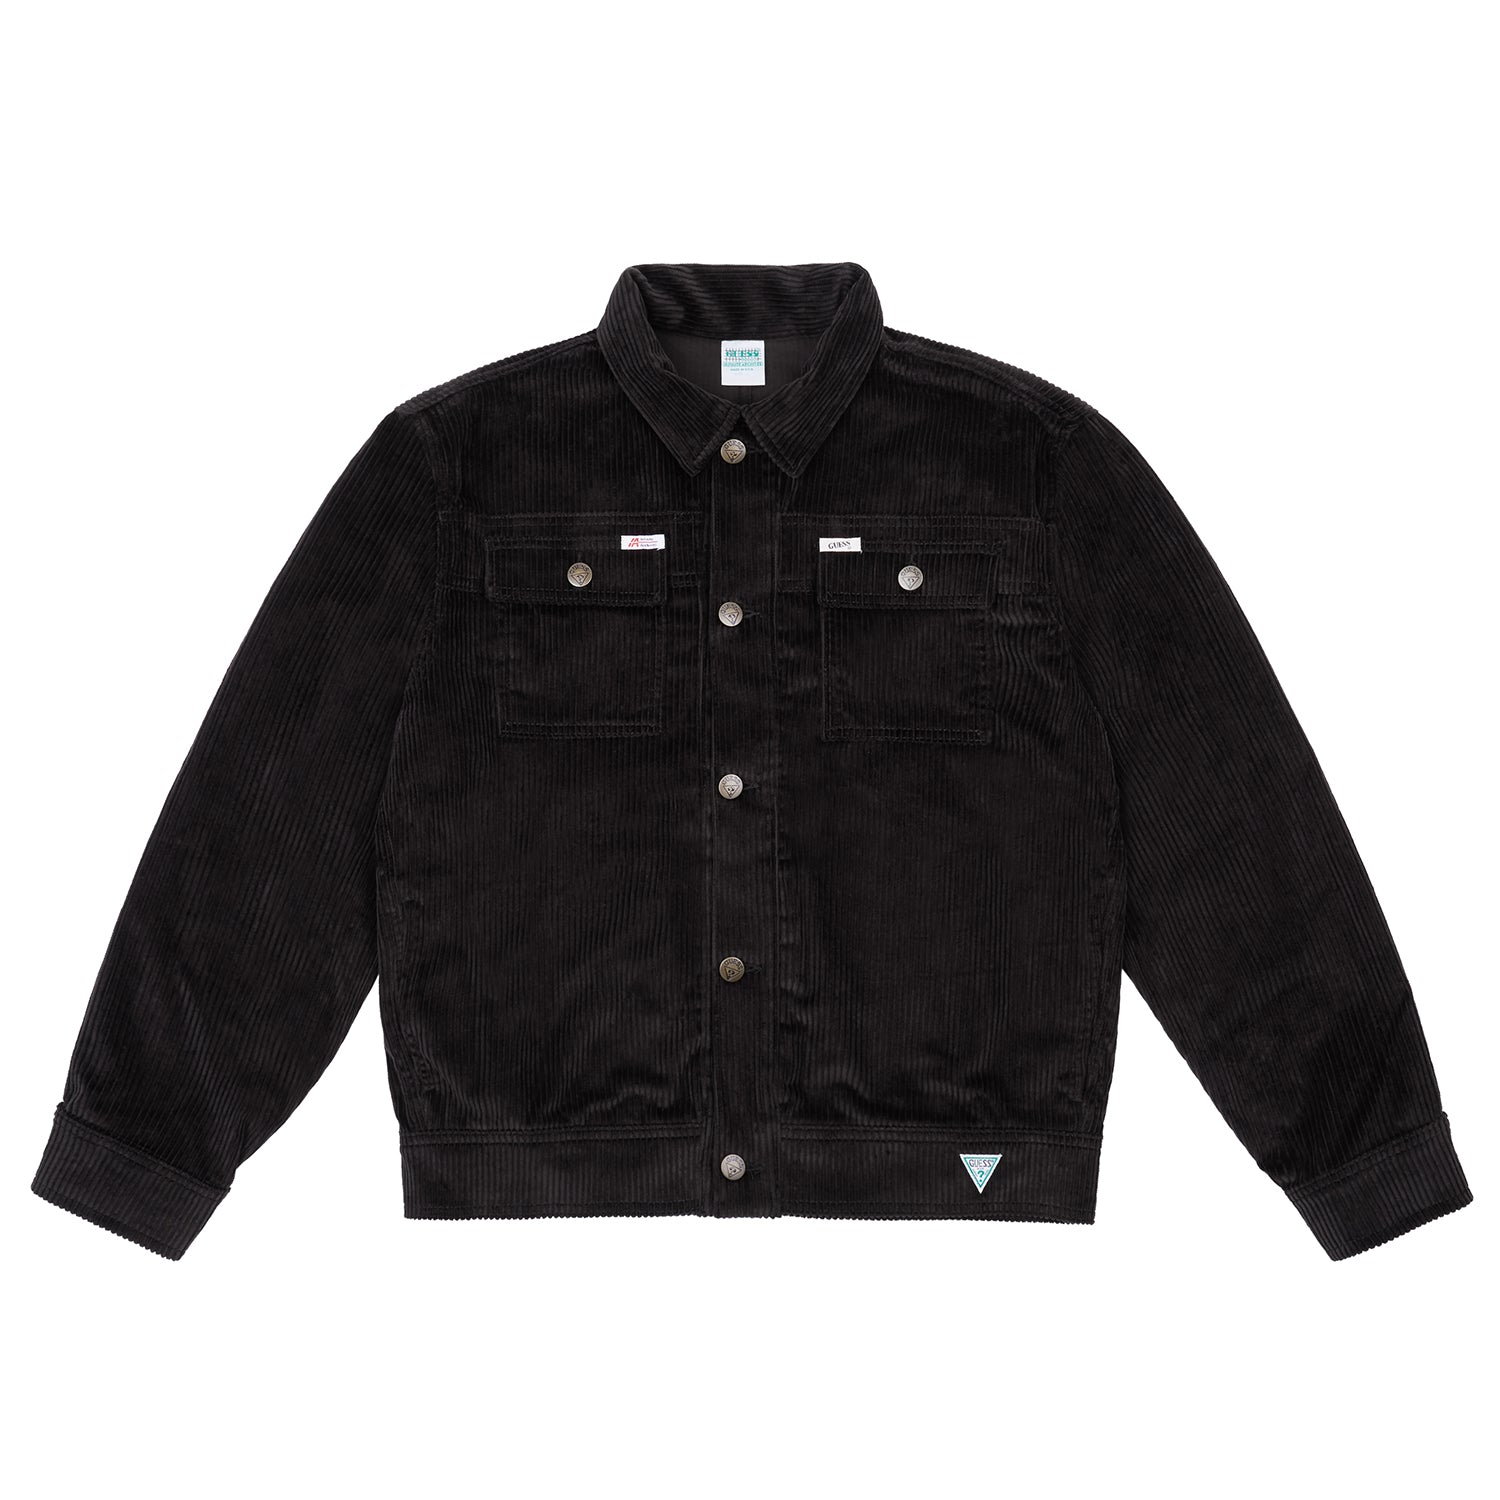 IA X GUESS LA WORKER JACKET (BLACK)